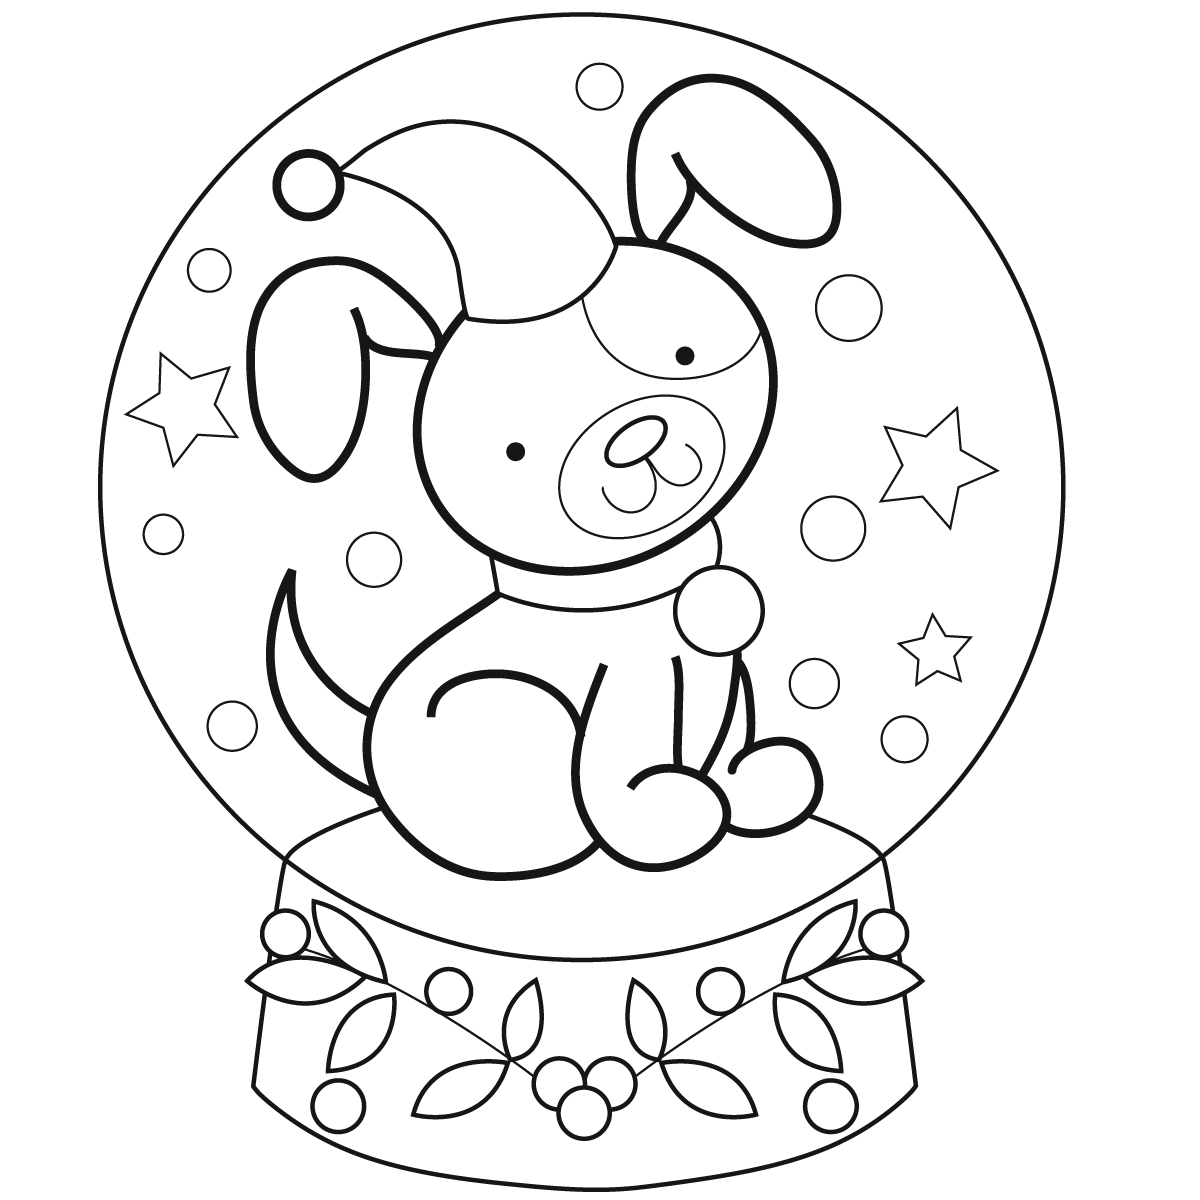 fox snow globe coloring pages - photo#25